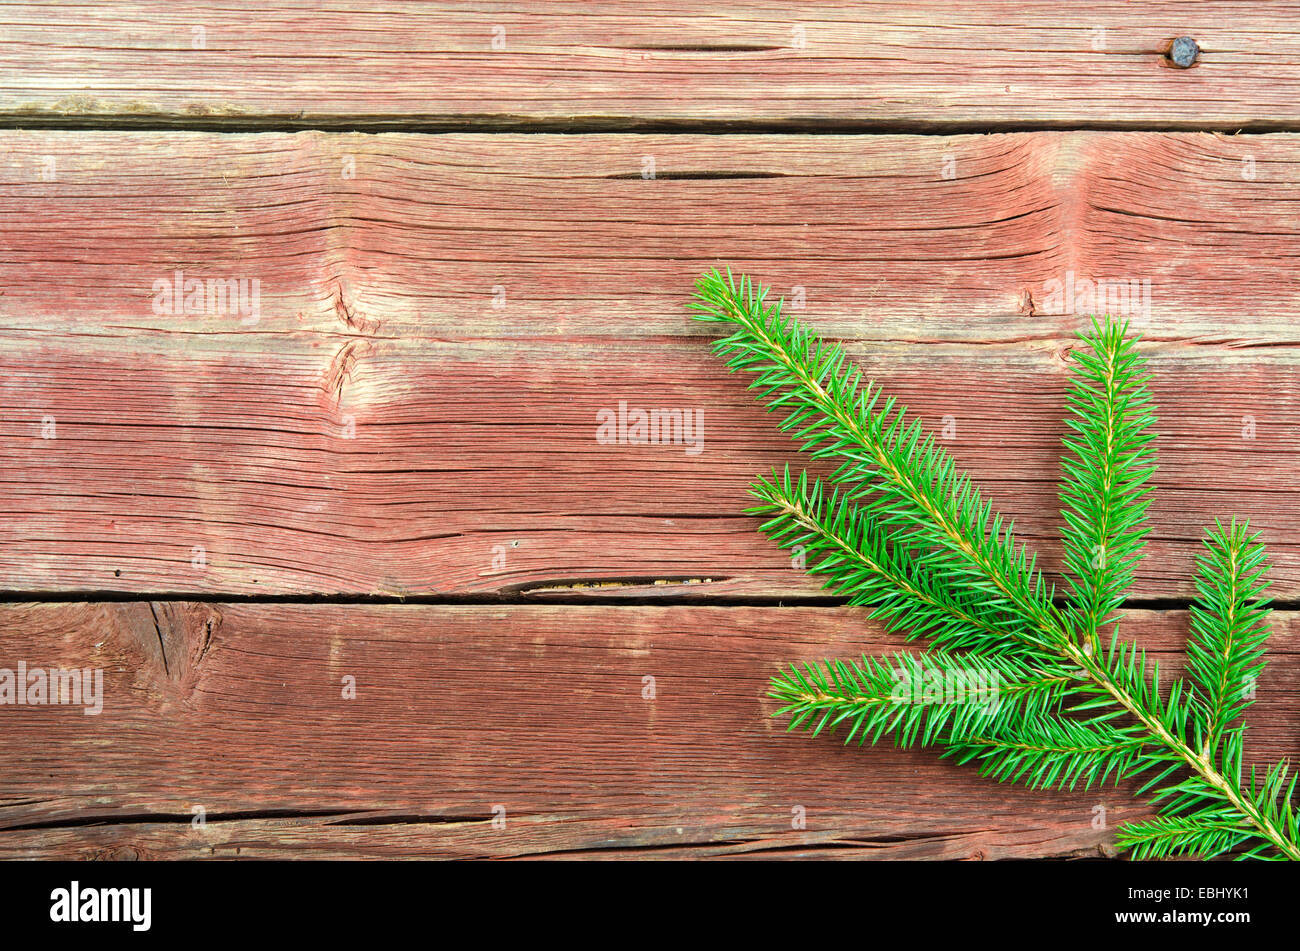 One spruce twig at an old wooden plank surface - Stock Image